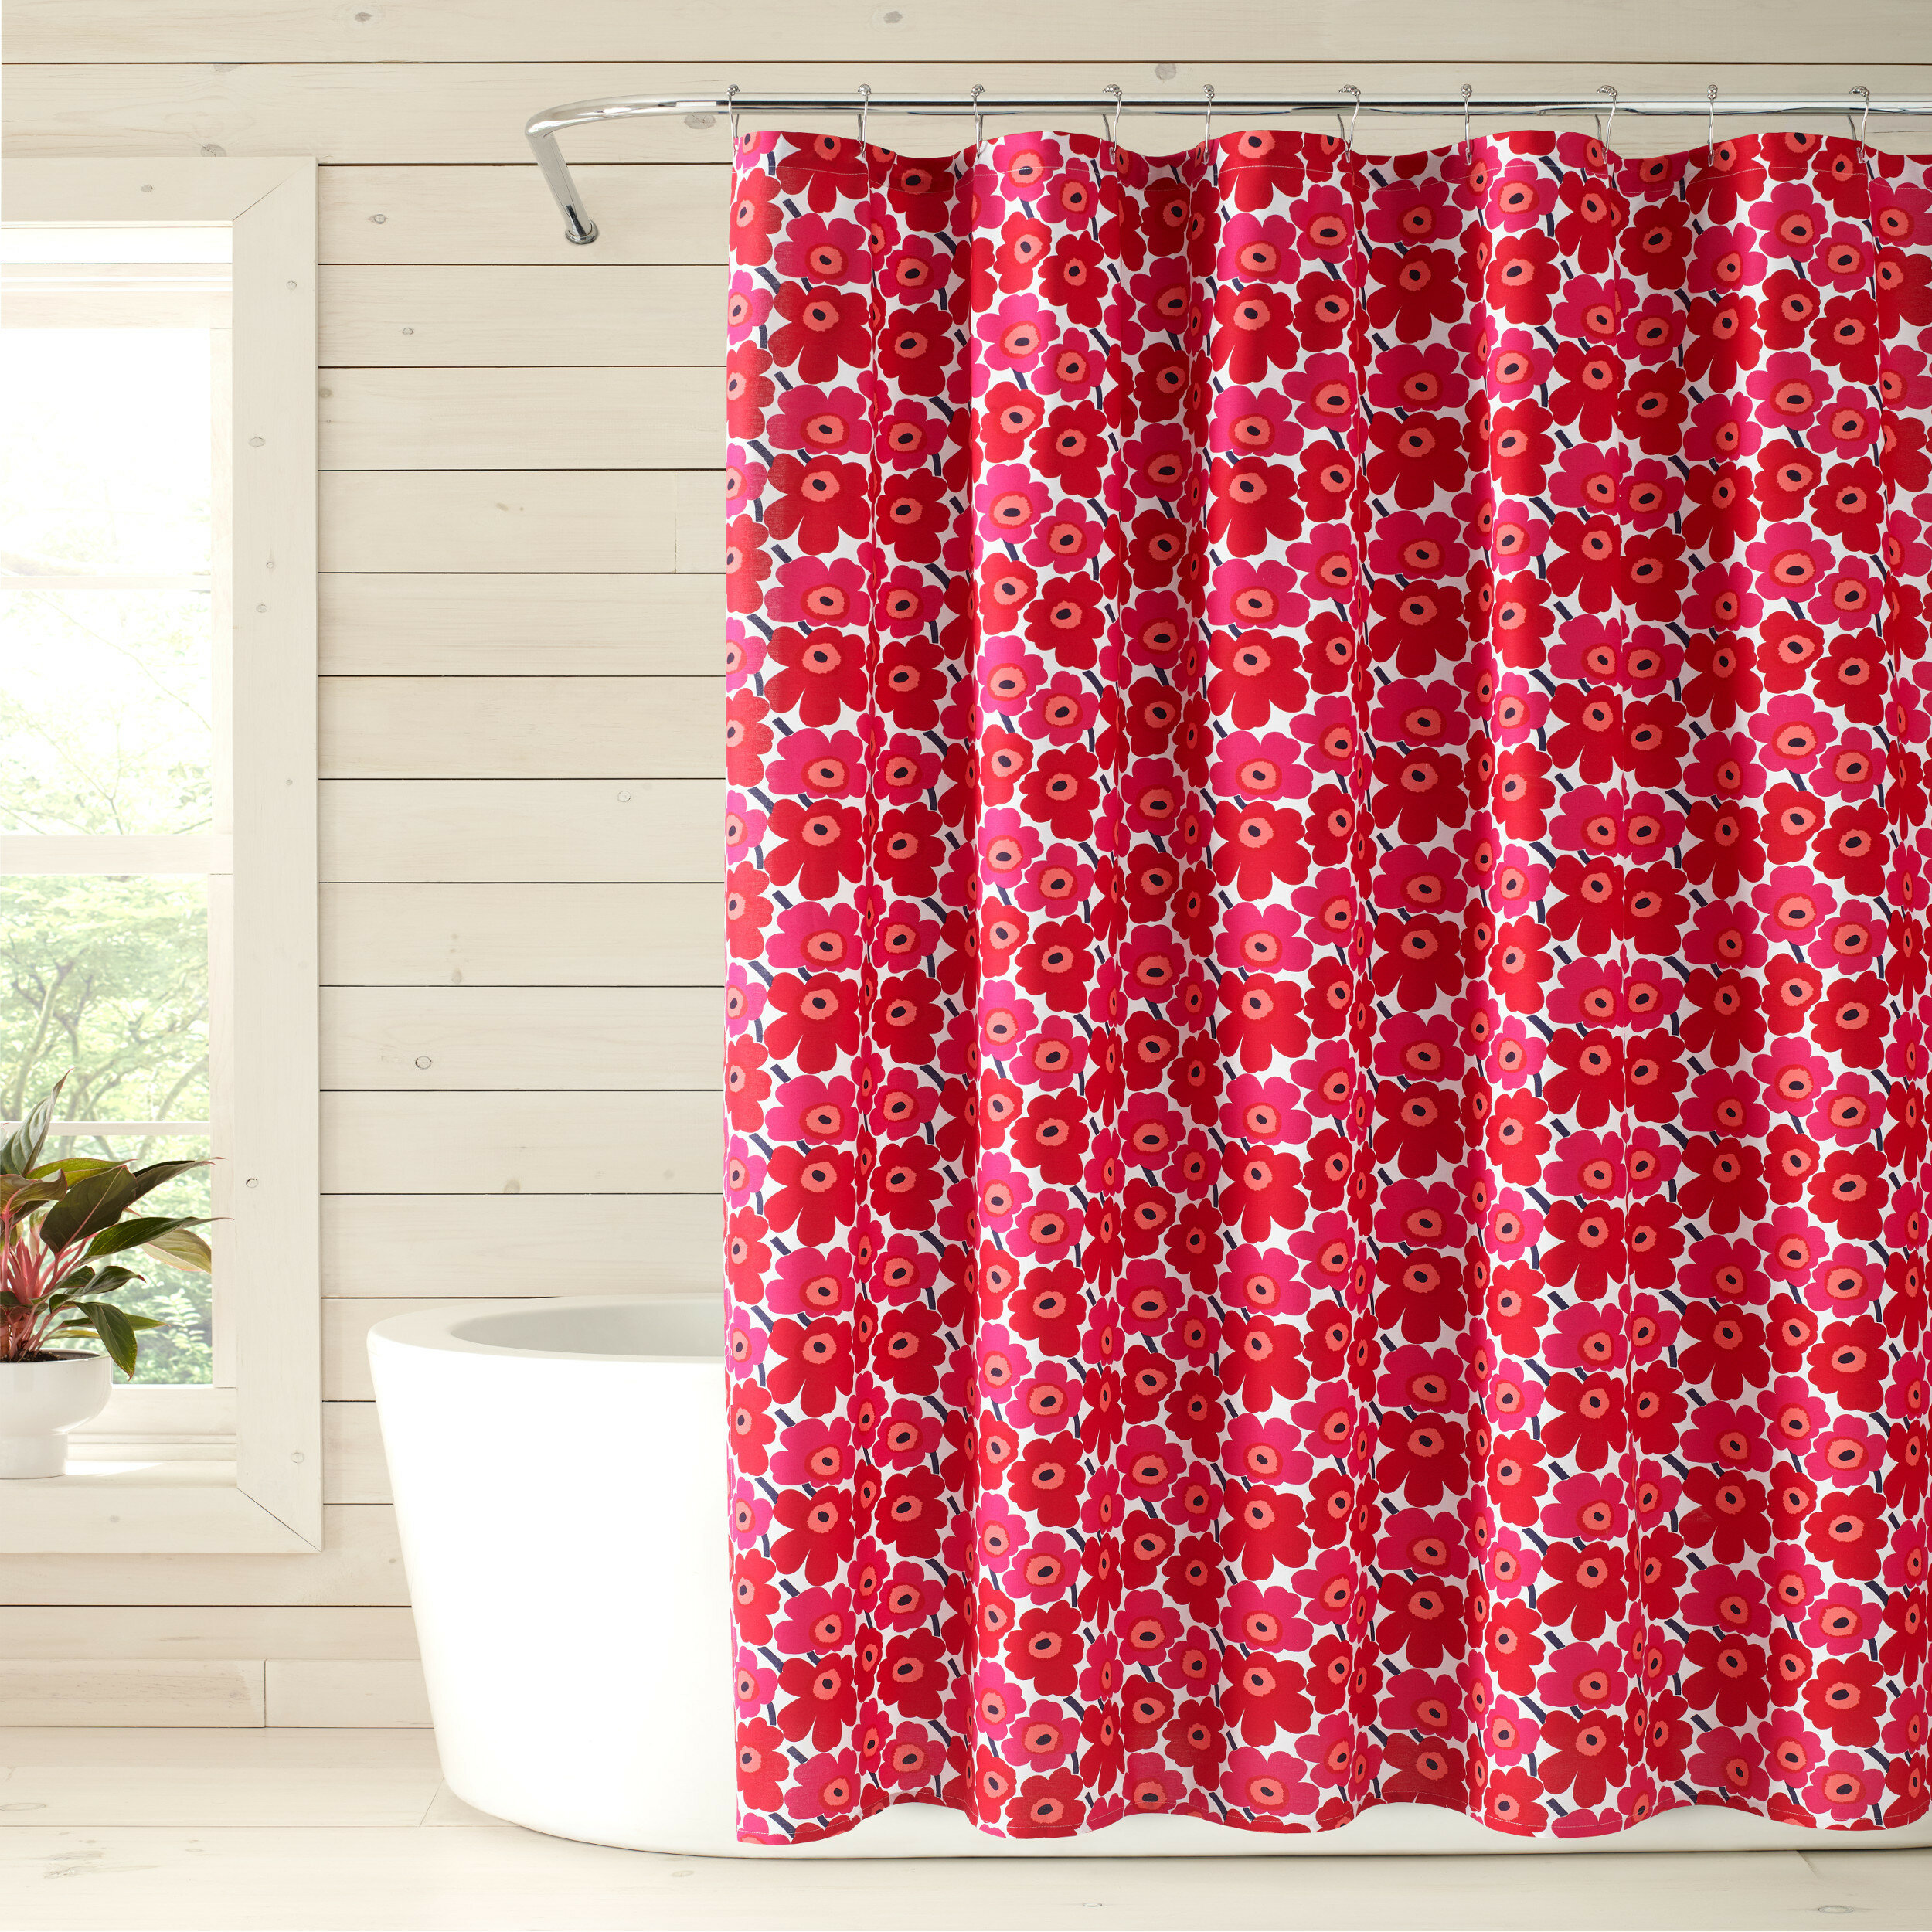 Cotton Floral Single Shower Curtain